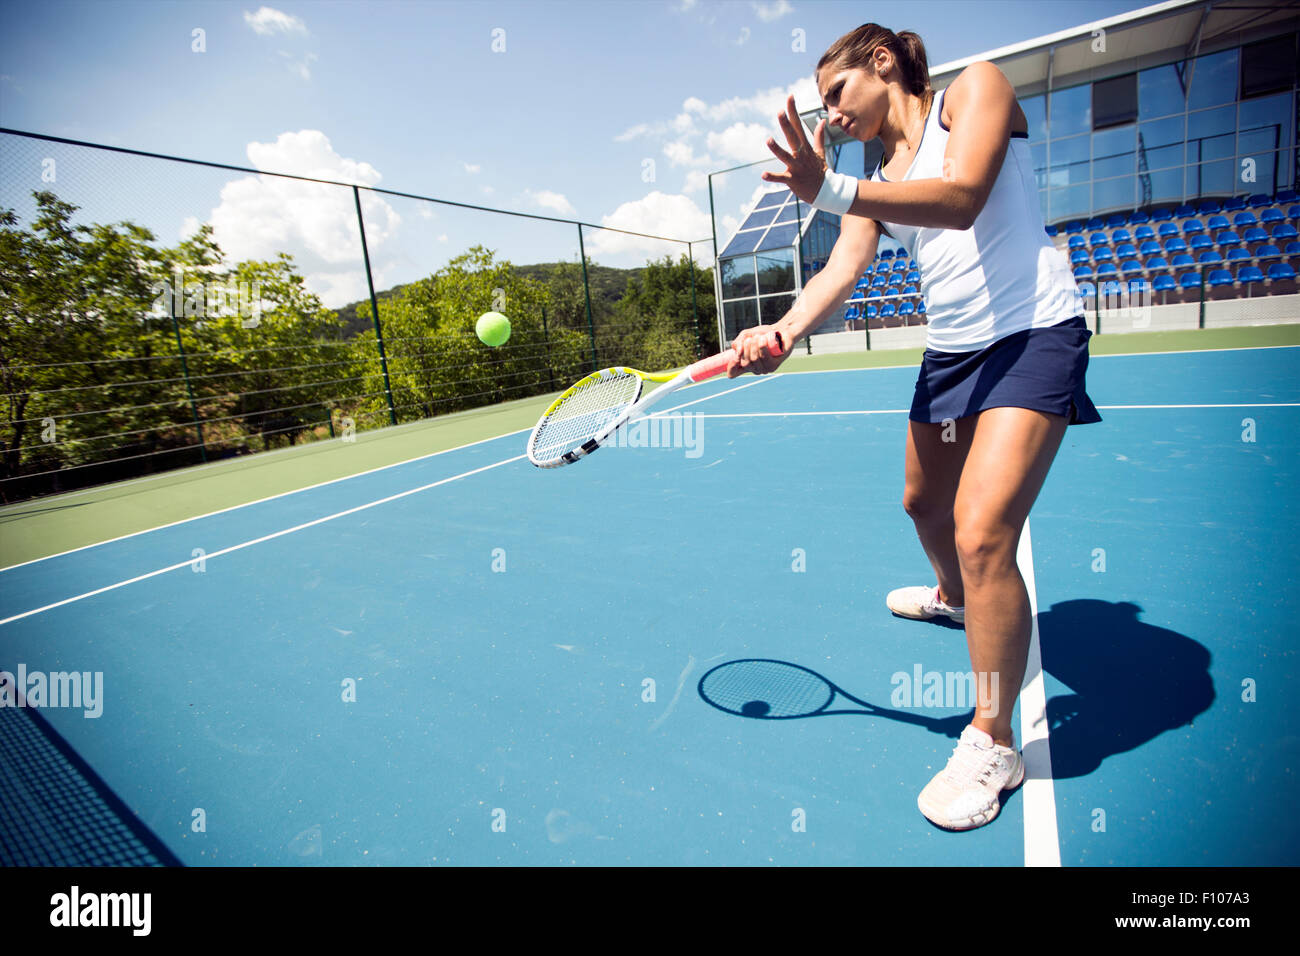 Female tennis player performing a drop shot on a nice blue court - Stock Image